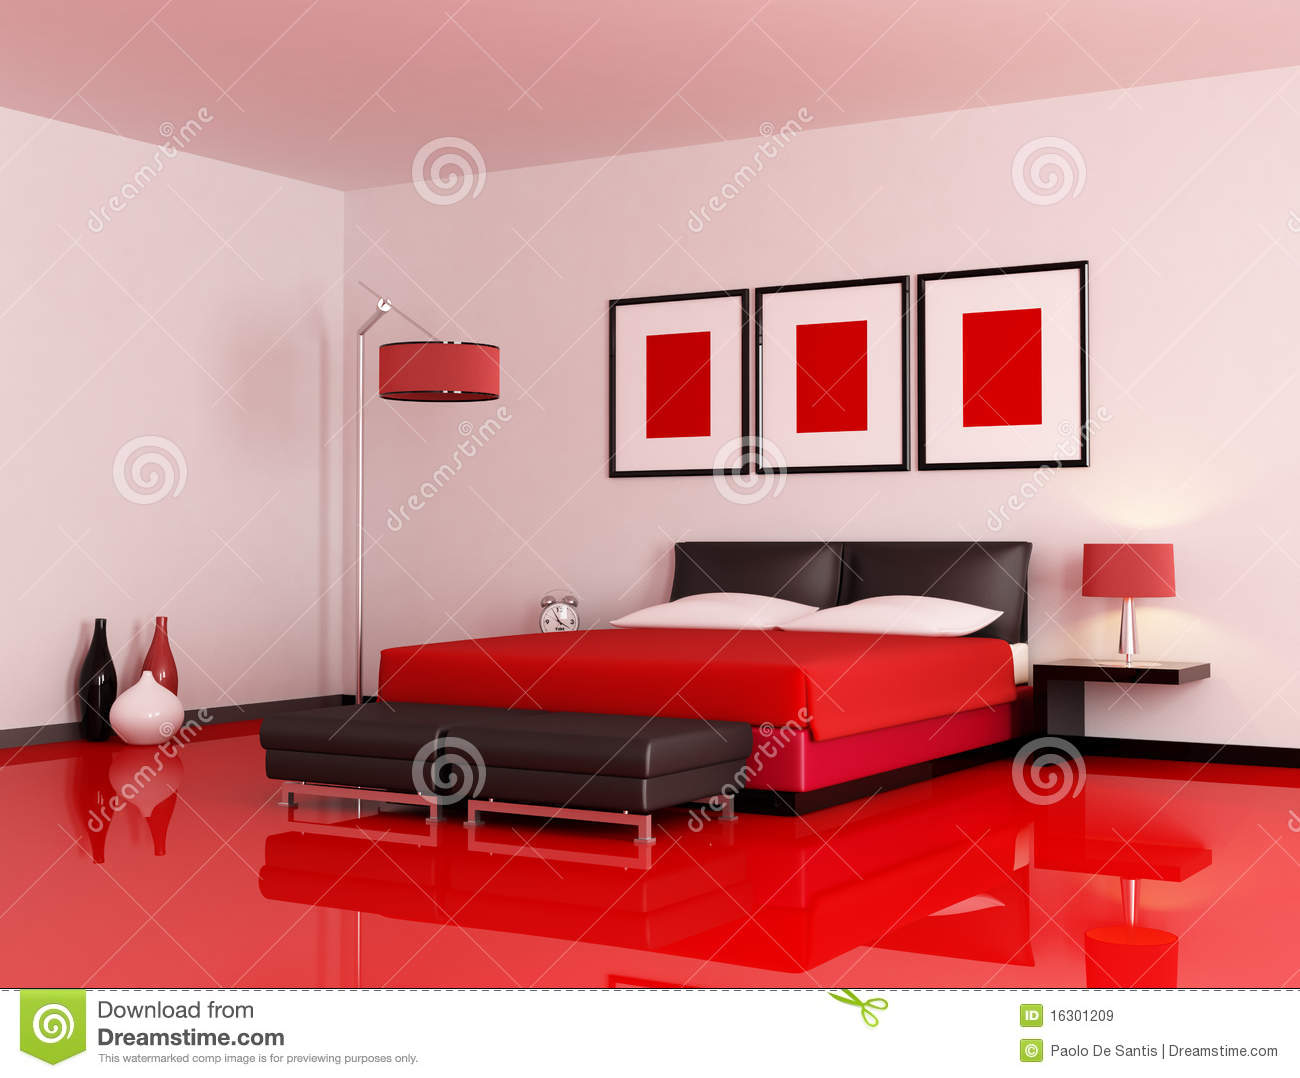 Red and black bedroom - Modern Red And Black Bedroom Royalty Free Stock Images